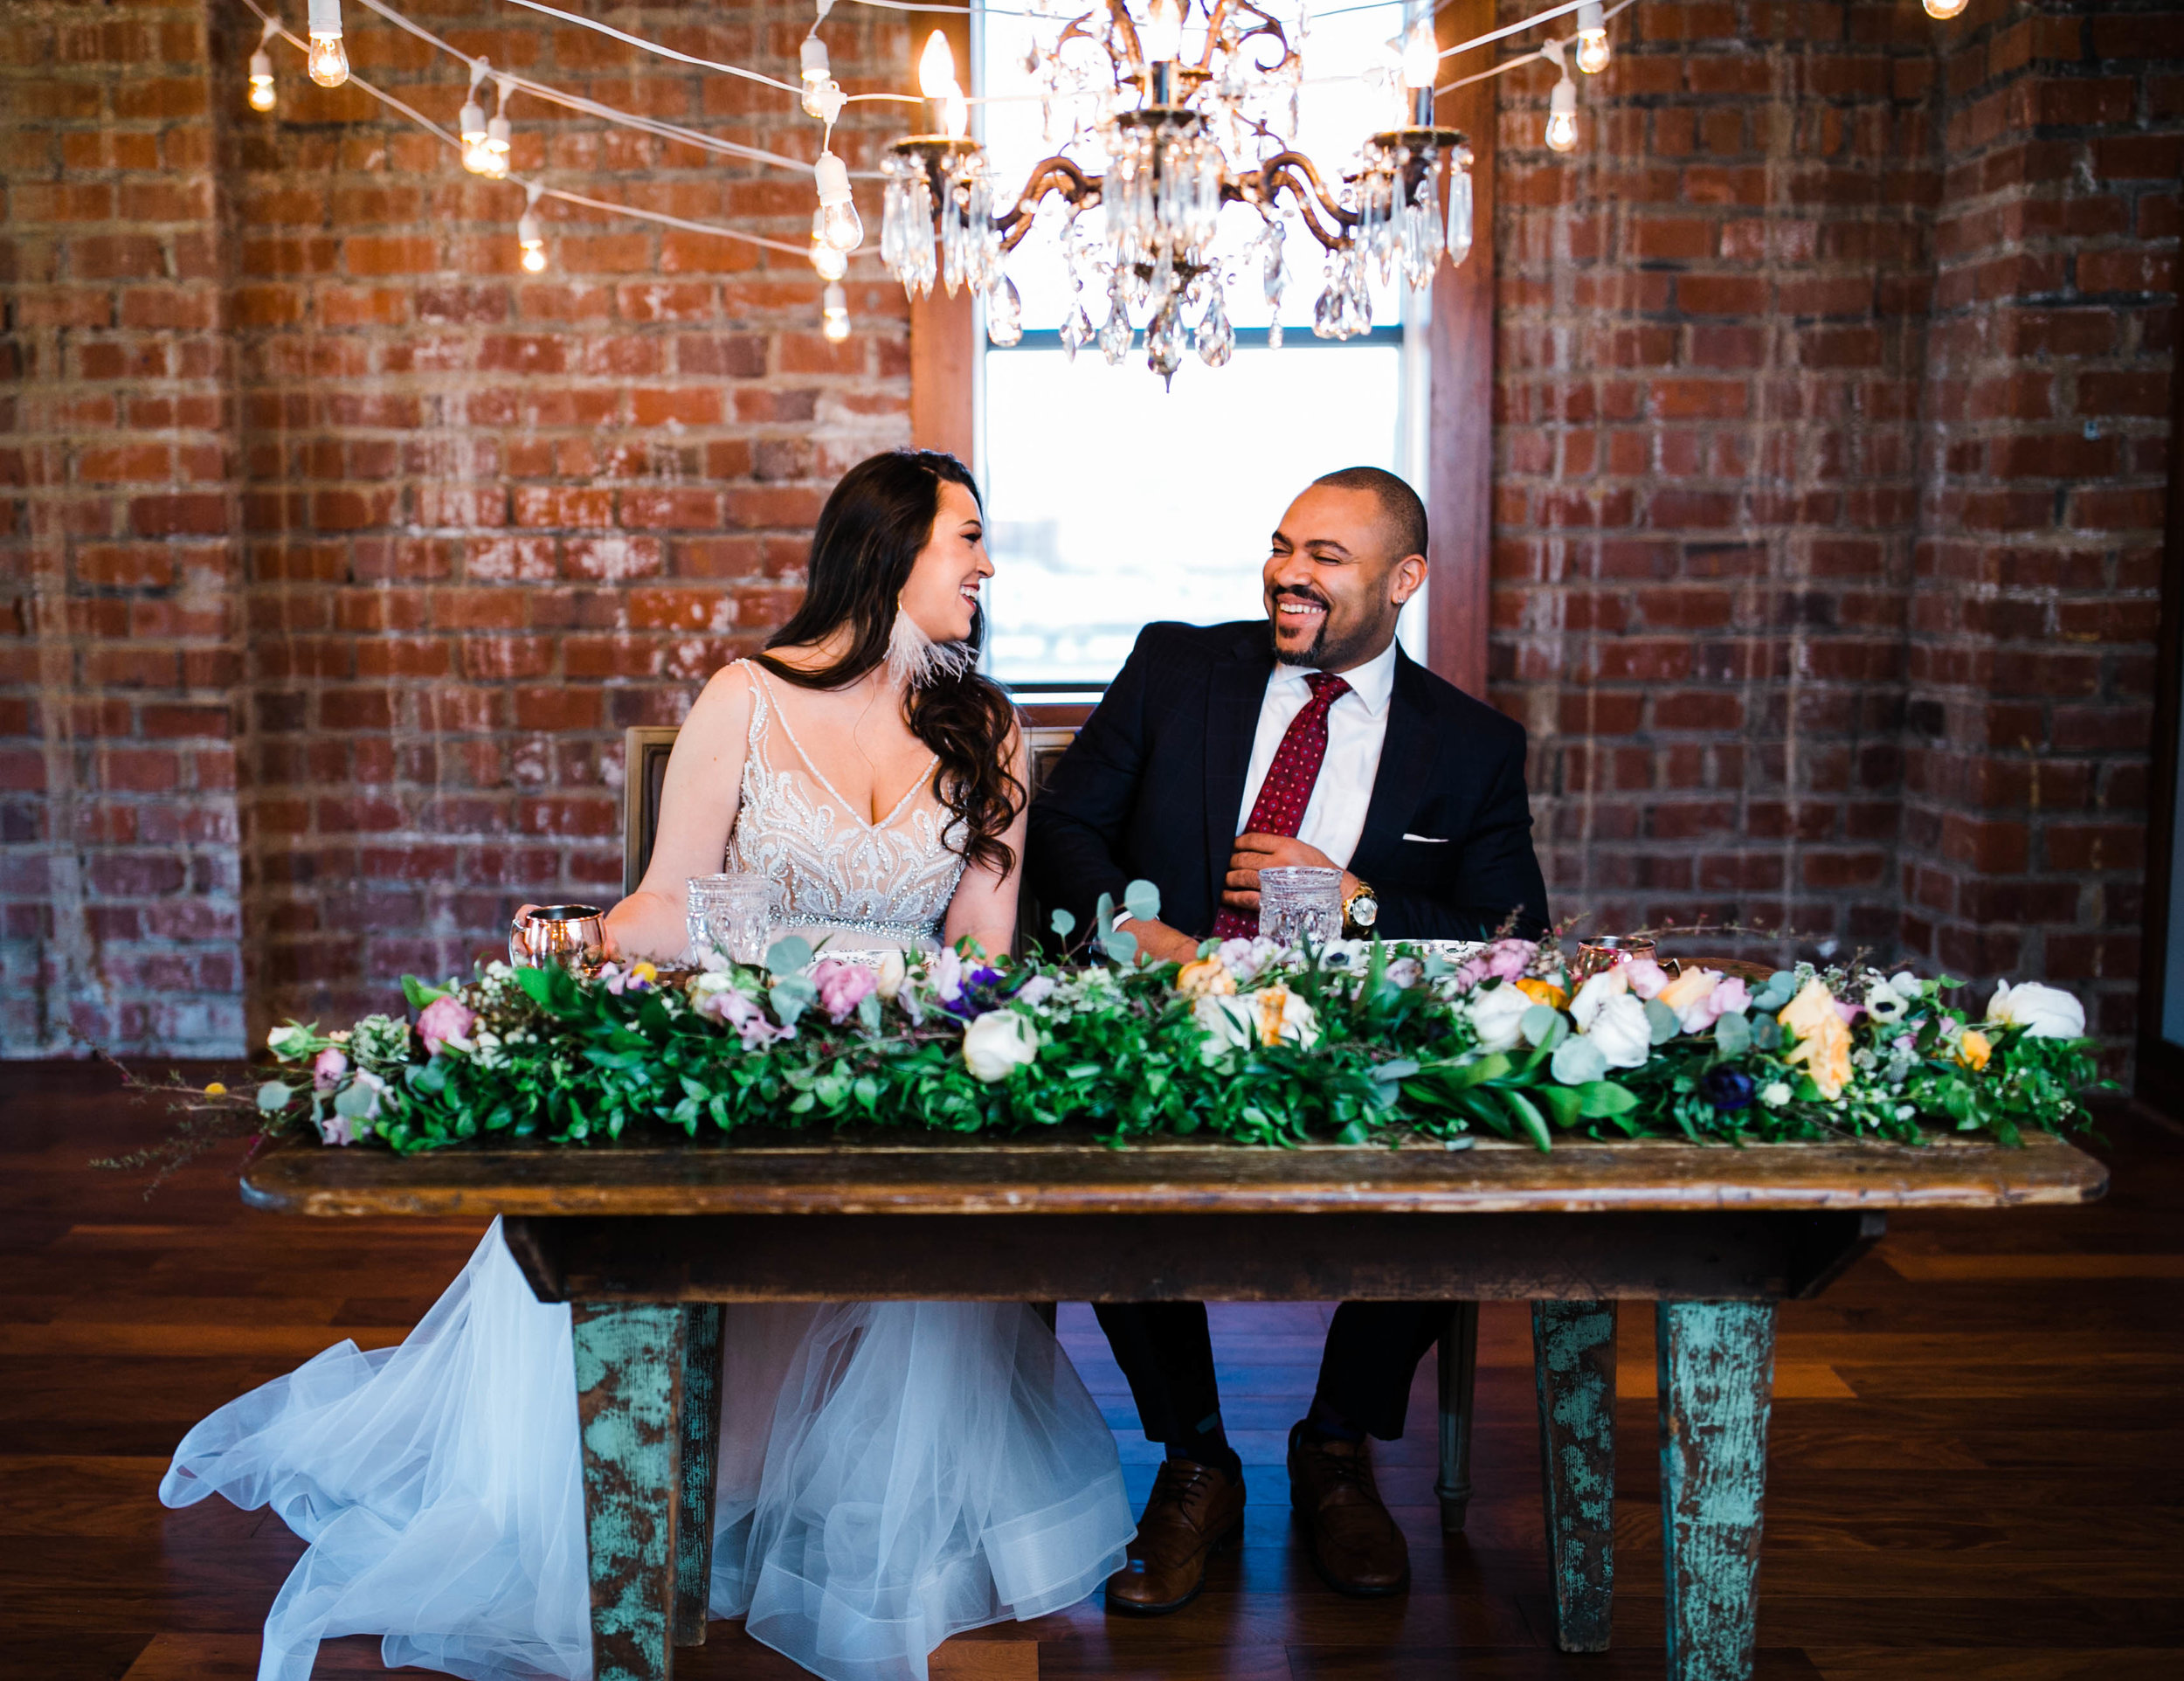 Melia and Julian laugh during their boho-chic, elopement-style shoot with urban vibes. I love the exposed brick, beautiful florals, vintage vibes and natural light here! If anyone wants a warehouse-vibe for their West Virginia wedding or elopement check out Yoga Power! The exposed brick and large windows make for some amazing photos..